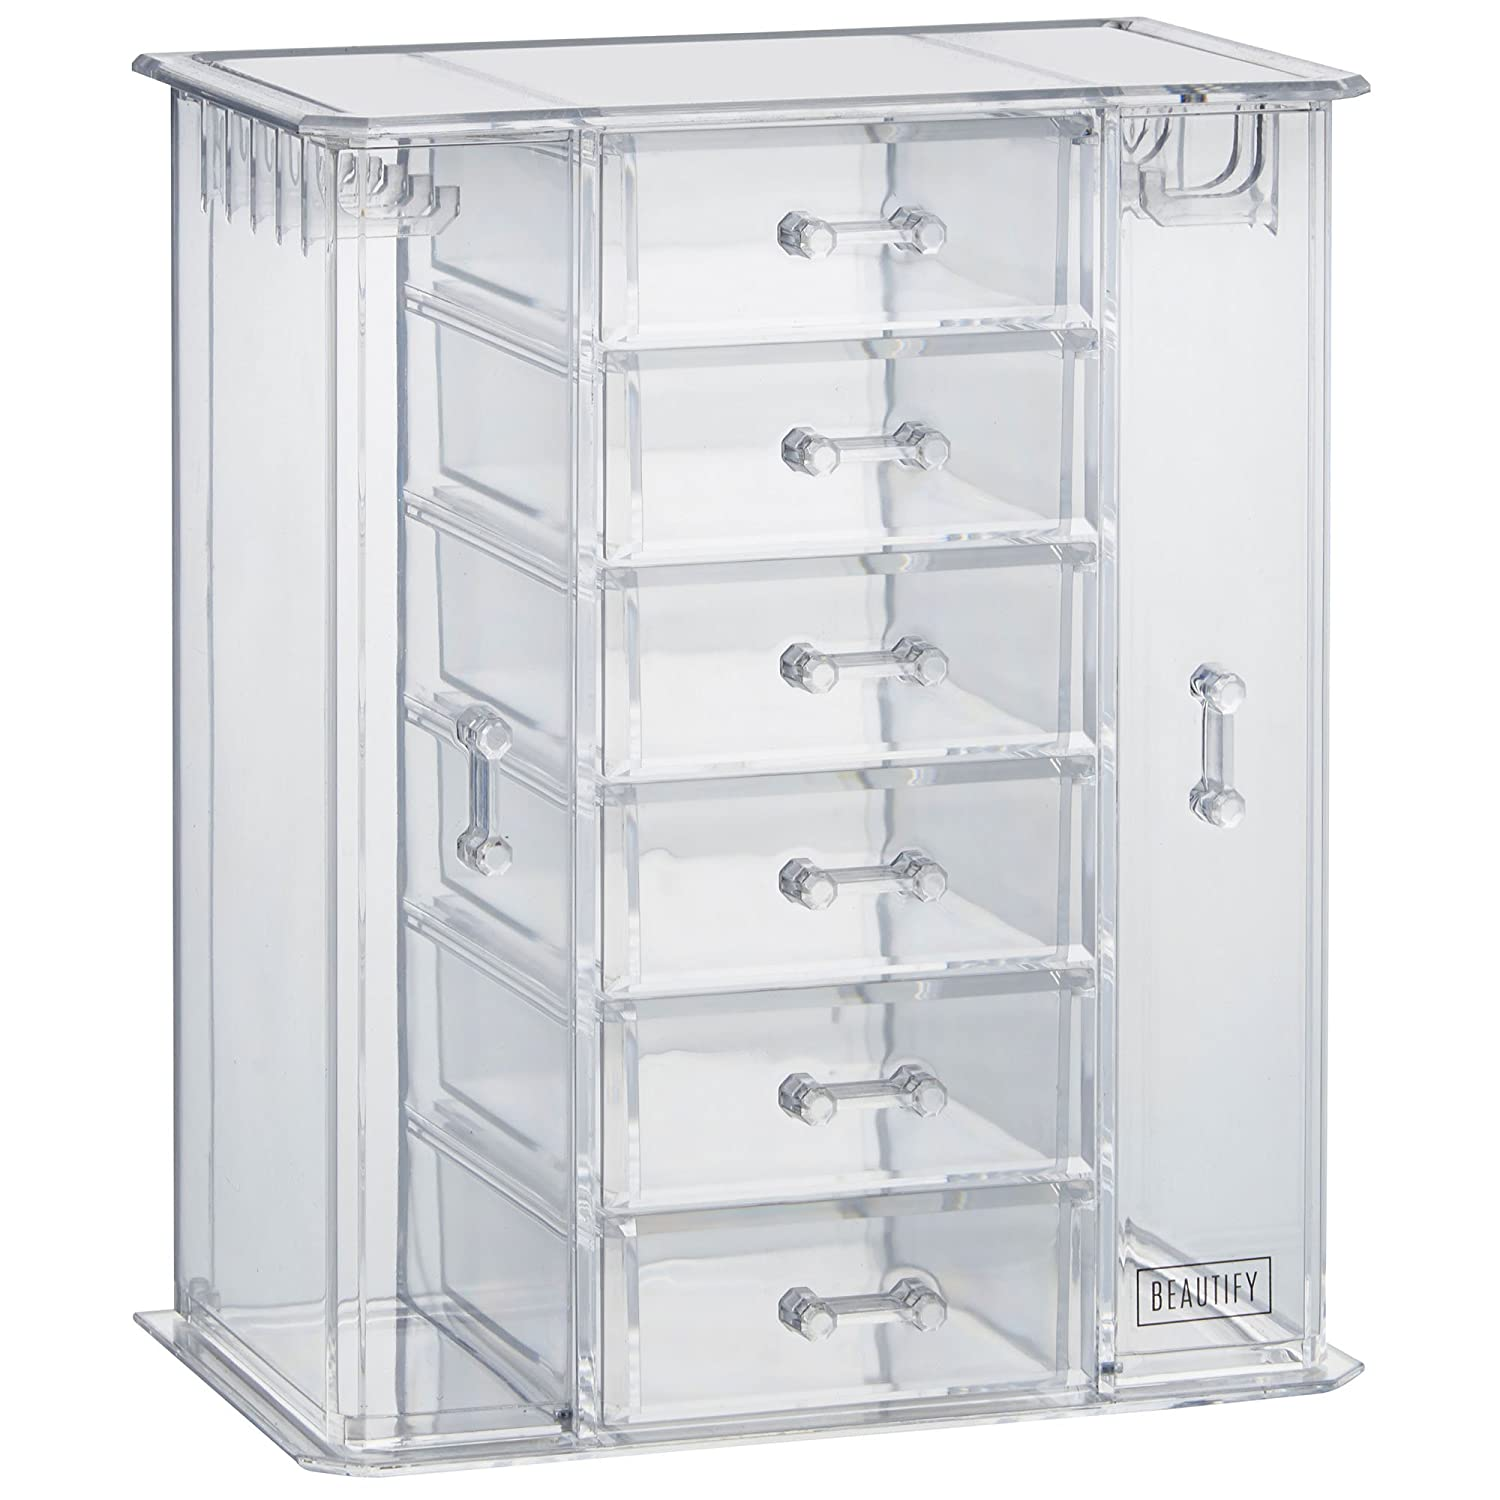 39b5f18f9615 Amazon.com: Beautify Clear Acrylic Jewelry Organizer Chest/Makeup Storage  Box with 6 Drawers & Hanging Necklace Holder - Clear: Home & Kitchen